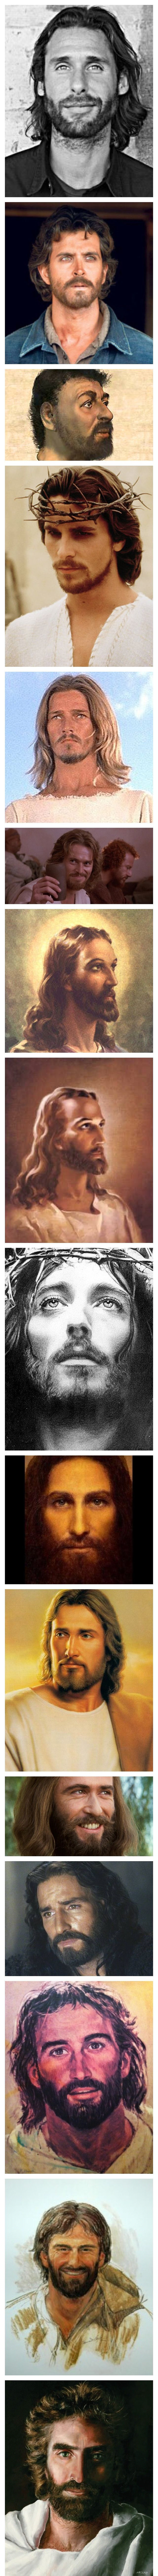 "What did Jesus look like? The Bible tells us a few things about what Jesus looked like: 1. Isa. 53:2 - ""He hath no form nor comeliness; and when we shall see Him, there is no beauty that we should desire Him."" - He wasn't incredibly built or handsome. 2. 1 Cor. 11:14 ""Doth not even nature itself teach you, that, if a man have long hair, it is a shame unto him?"" Jesus was from Nazareth but it says nothing of Him taking the Nazarite vow. Jesus had short hair. 3. He had a beard because they…"